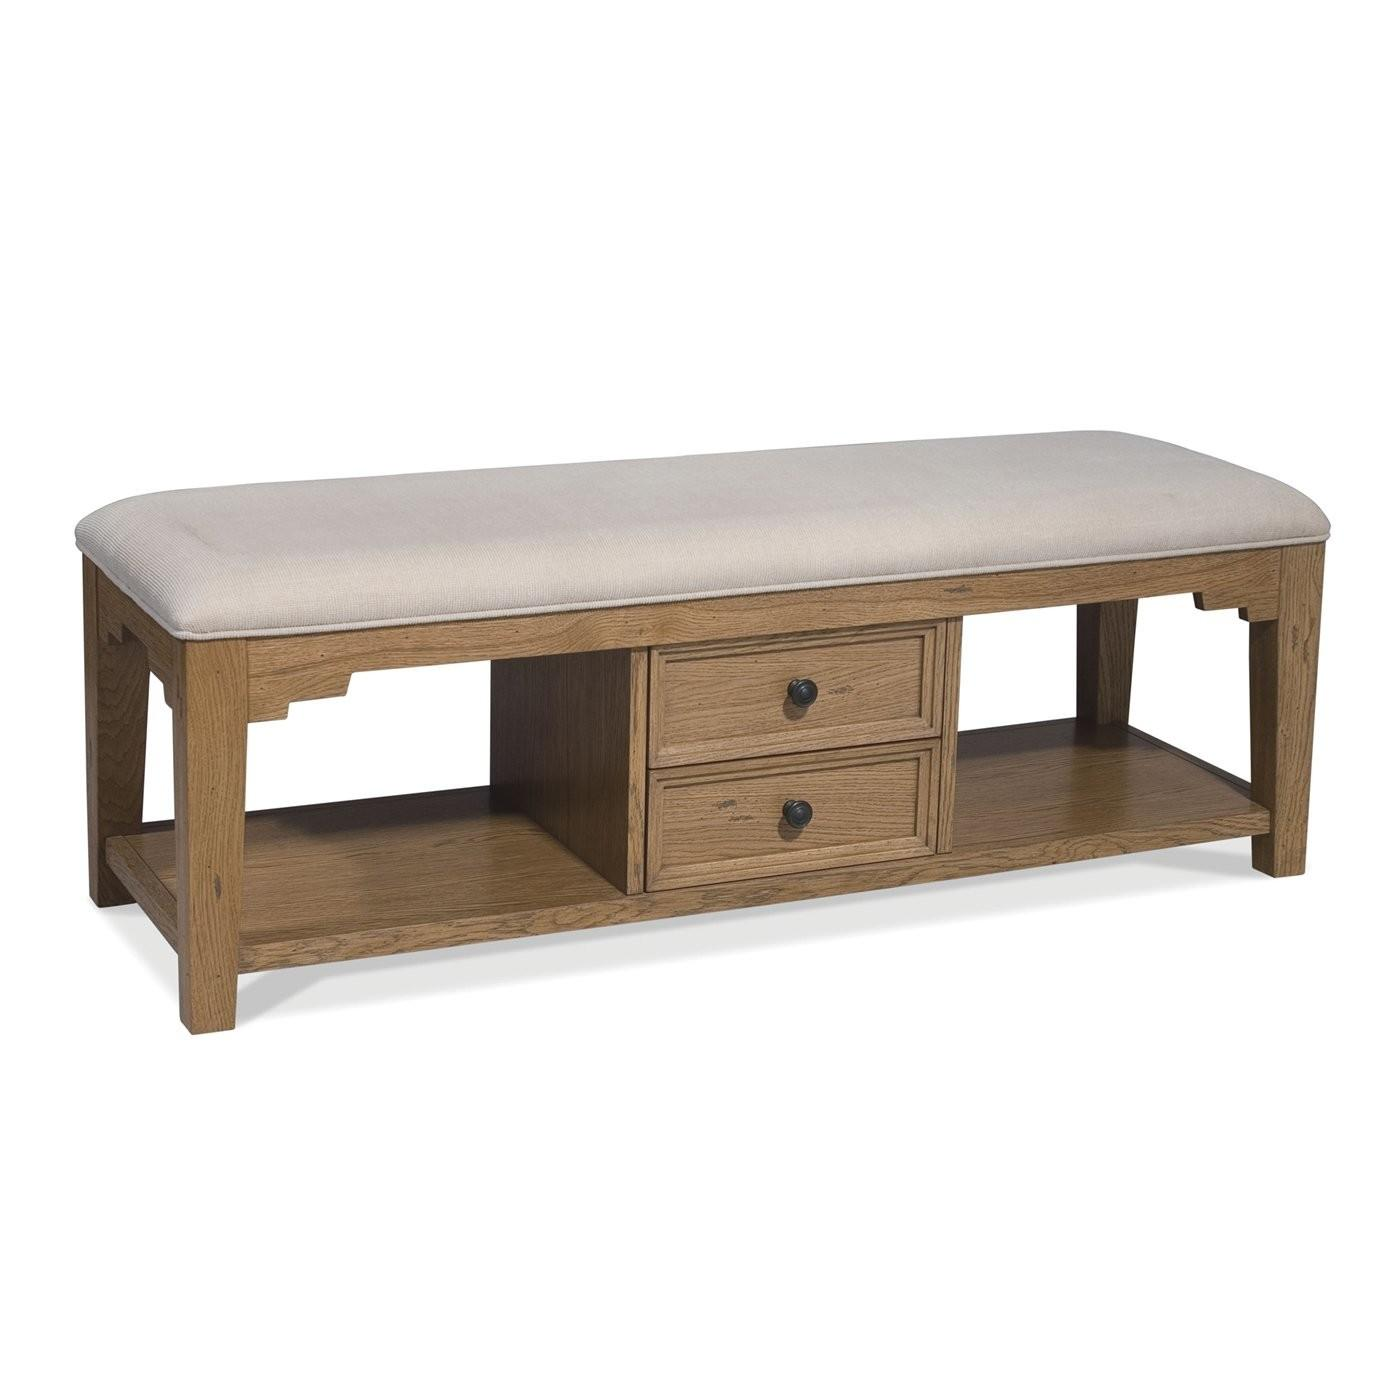 Small Bench Bedroom Trends Also Storage